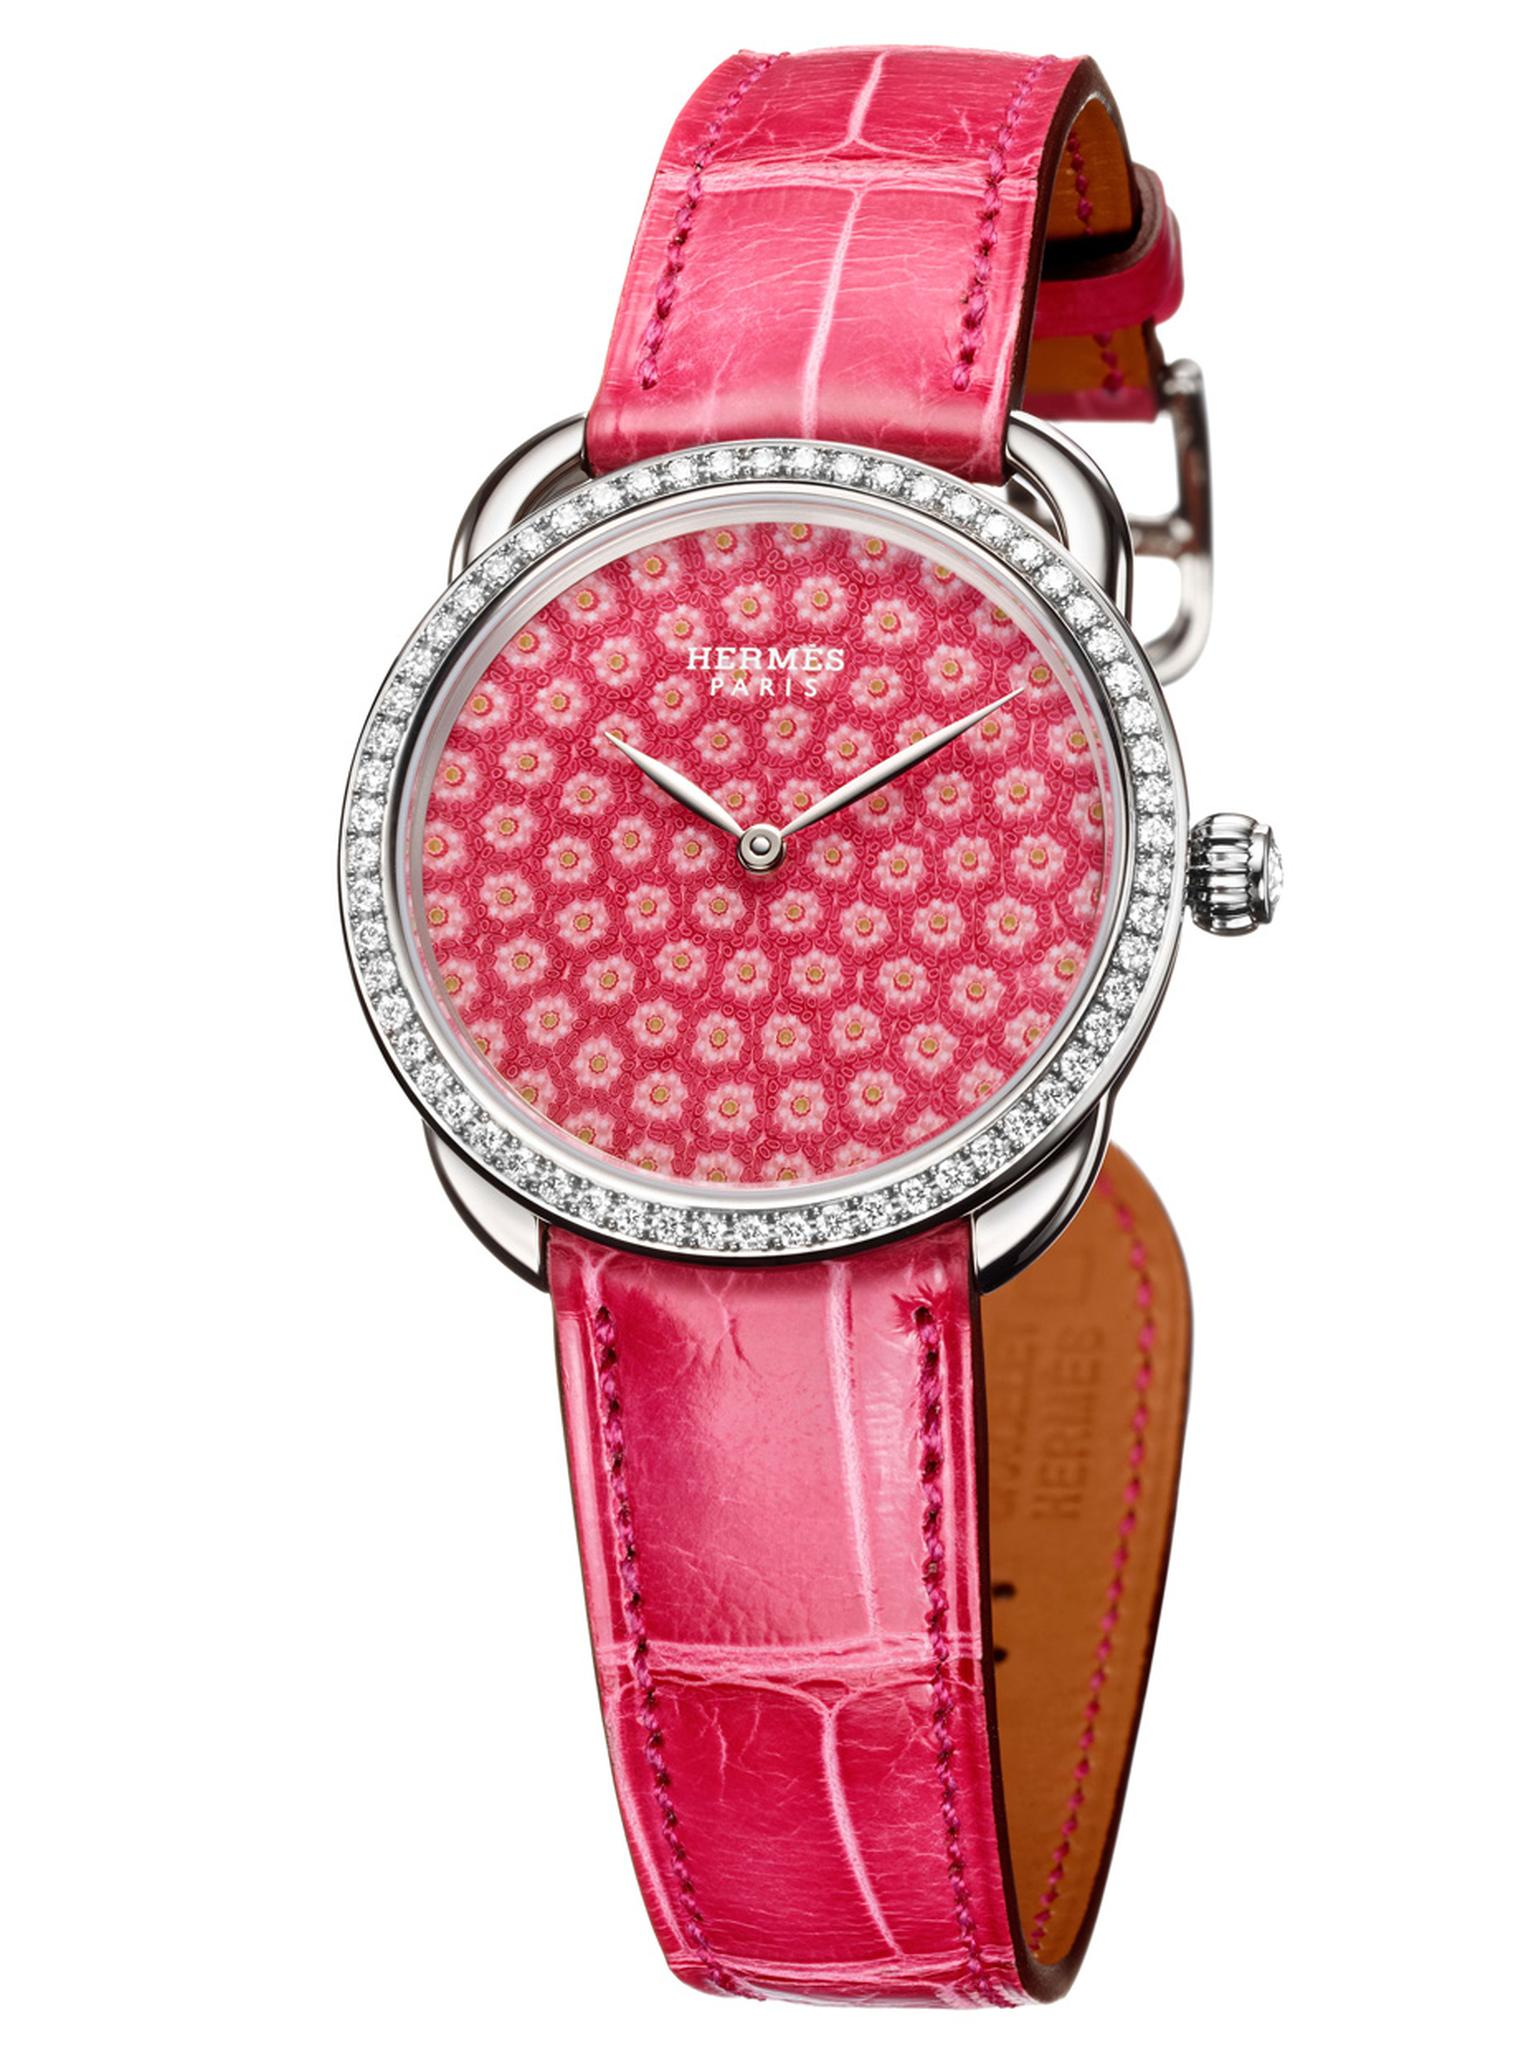 Hermès' Arceau Millefiori watch is decorated with thousands of miniature pink glass flowers crafted by Les Cristalleries de Saint-Louis in France, the same company that has been blowing life into glass paperweights since 1586.